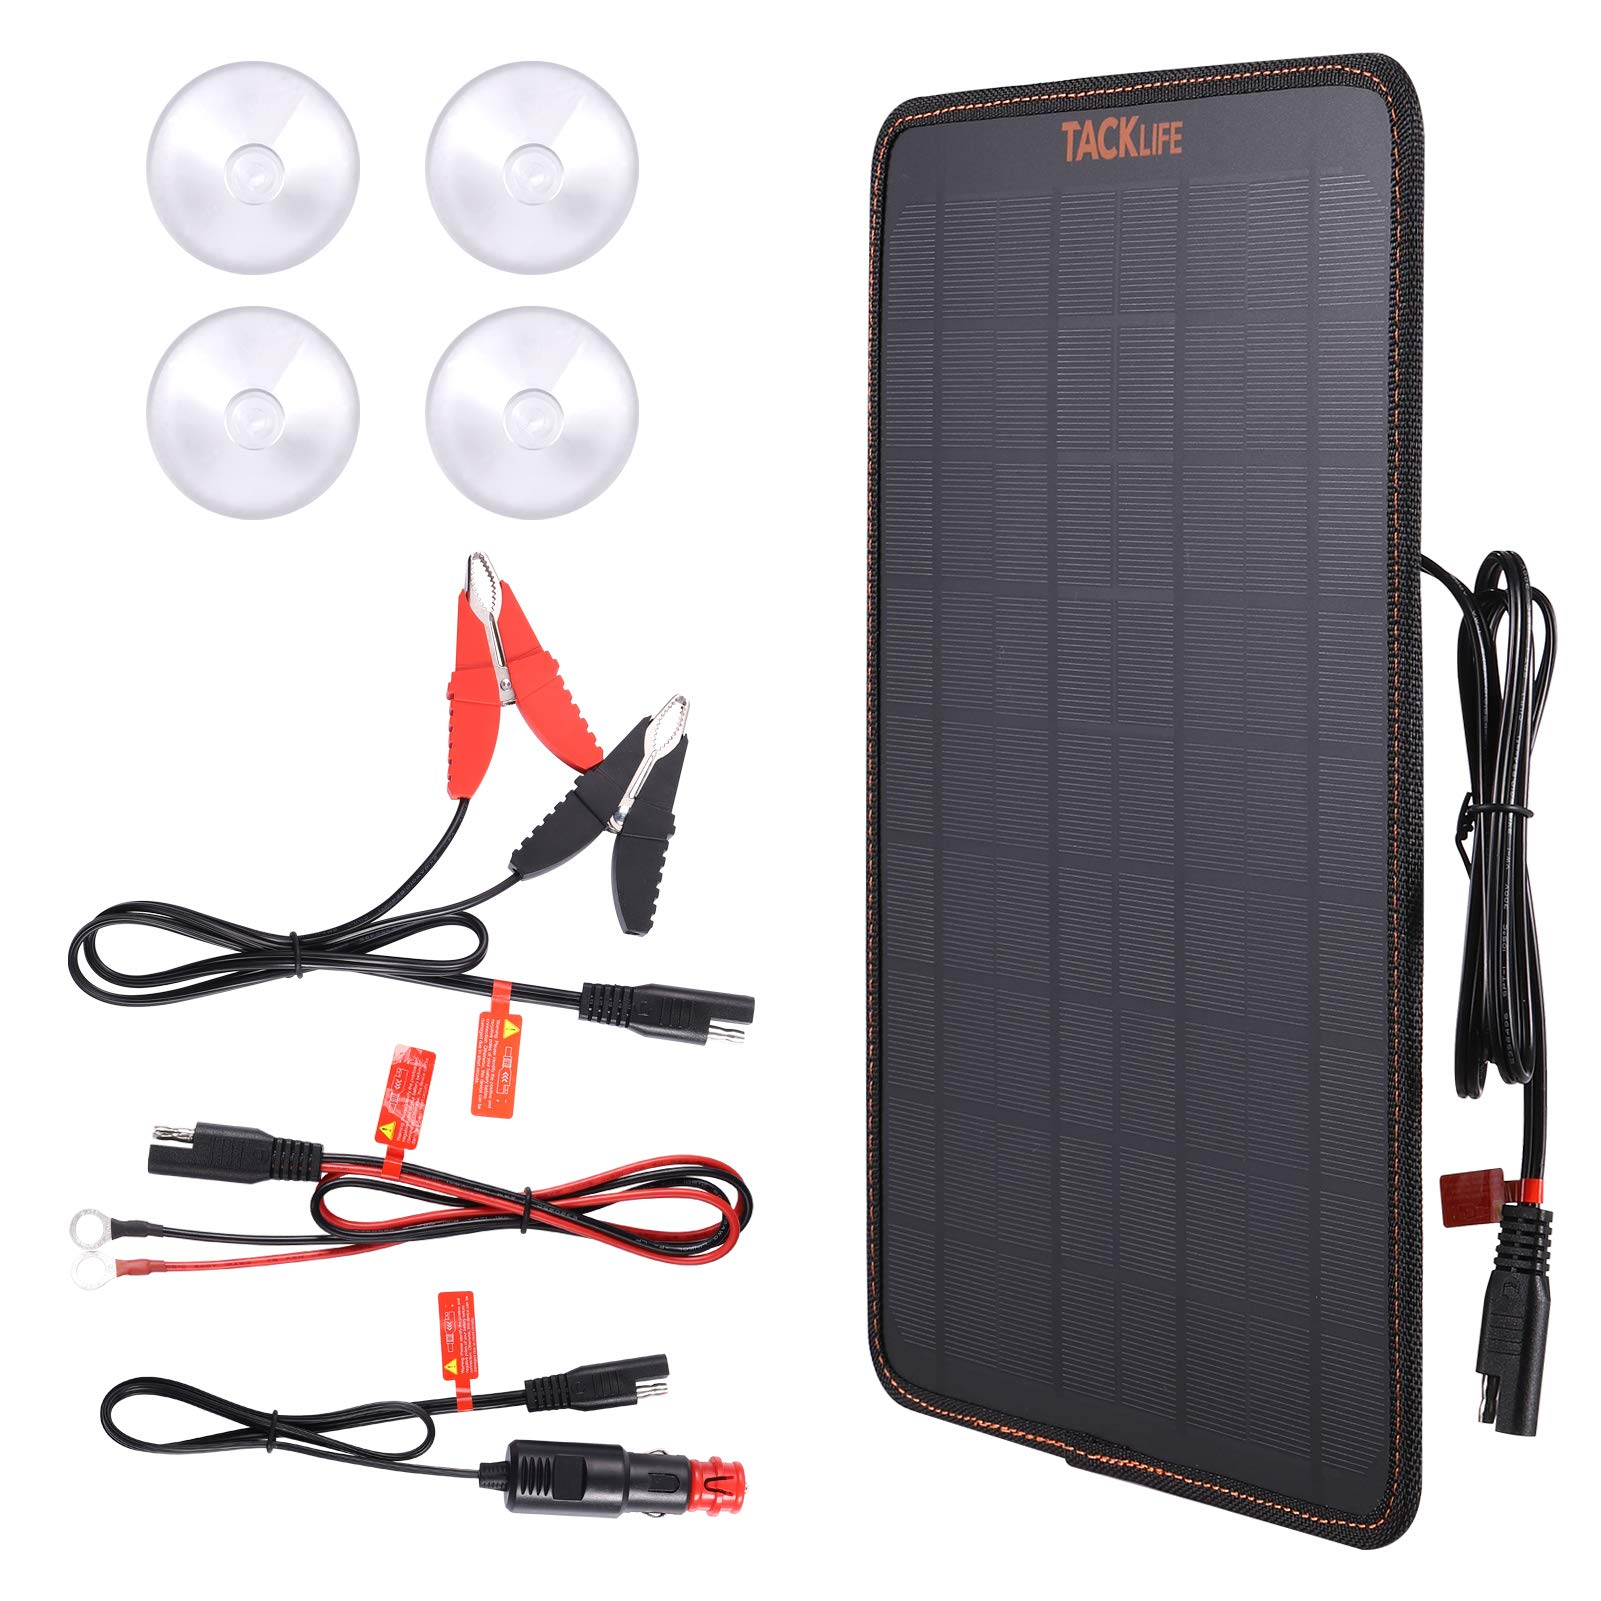 TACKLIFE Solar Panel, Portable Solar Charger, 18 Volt Notebook-Sized Car Battery Charger & Maintainer 10W Power Battery Charging with Alligator Clip Cable for Car, Boat, Motorcycle, Tractor, SP101